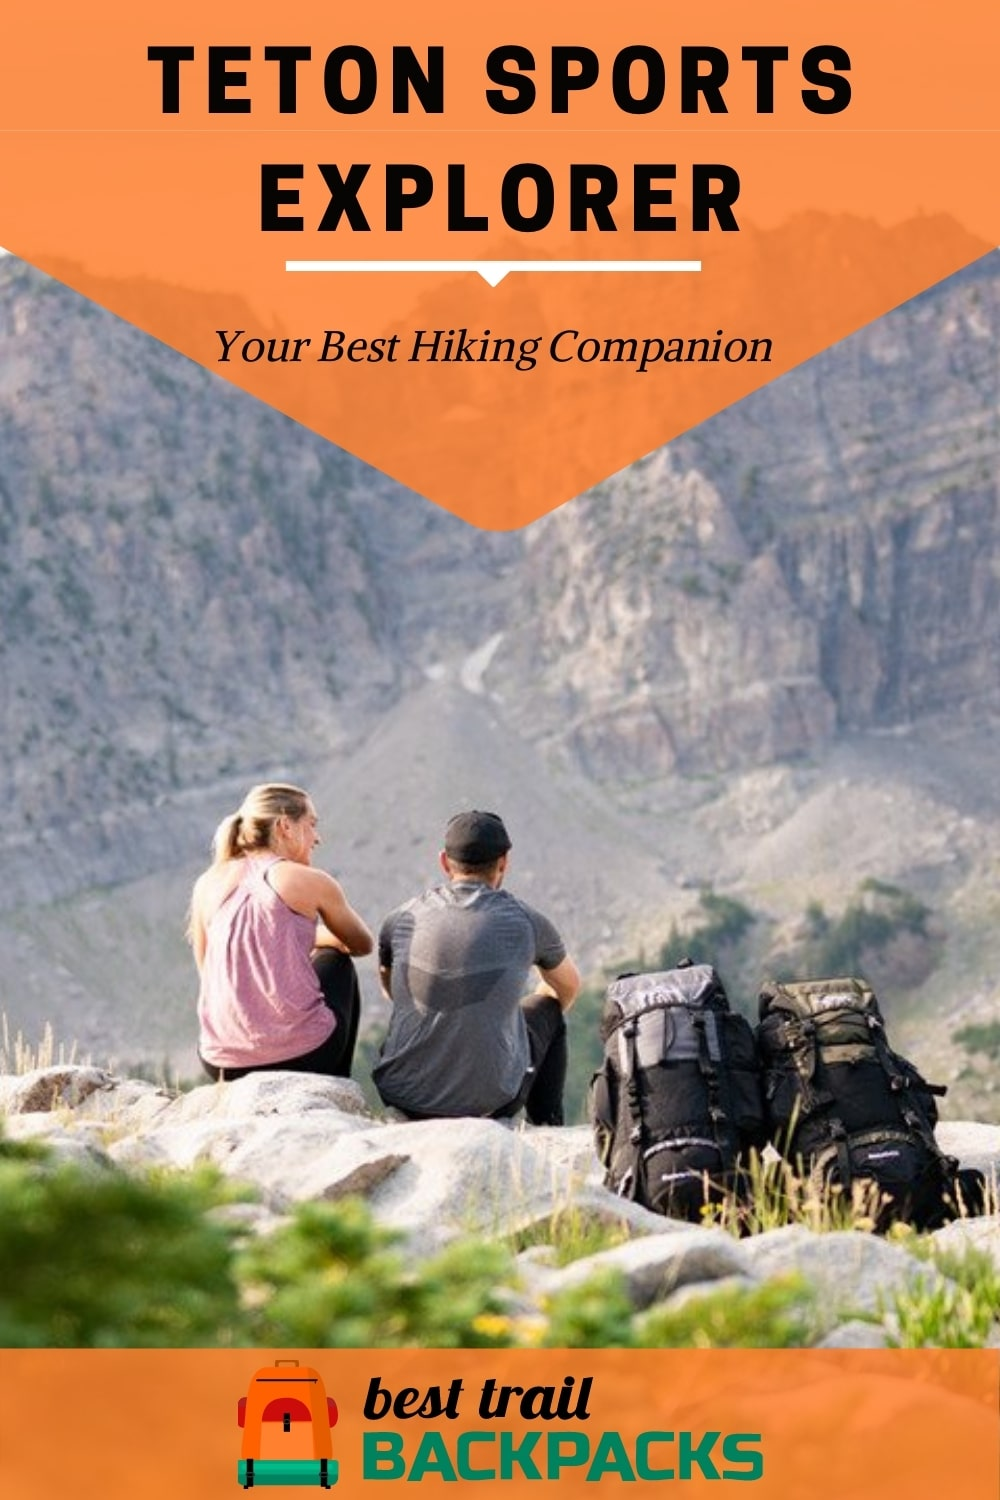 Teton Sports Explorer Review - A Couple Sitting by a Cliff with their Backpacks